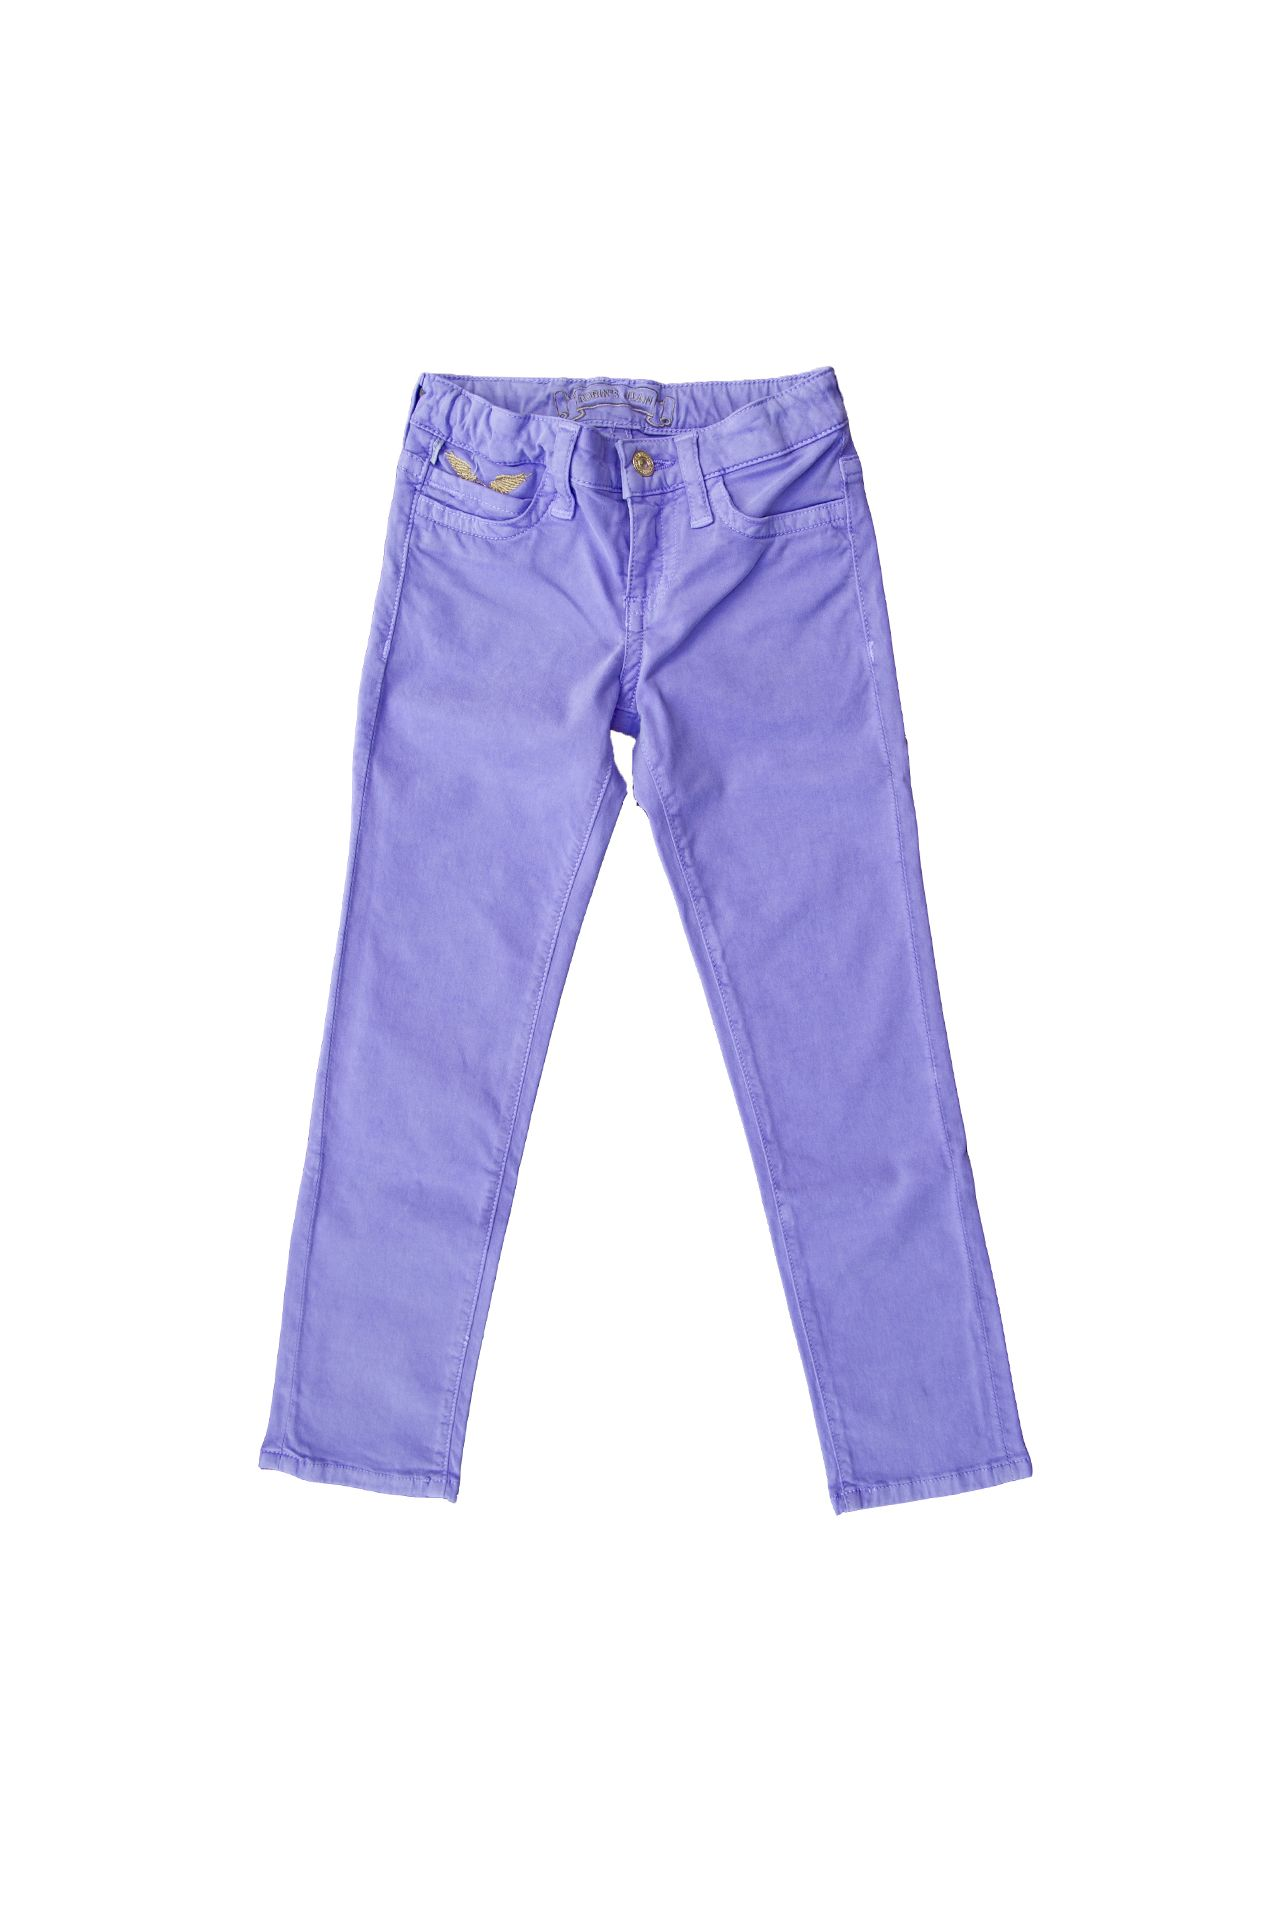 KID PANTS PURPLE